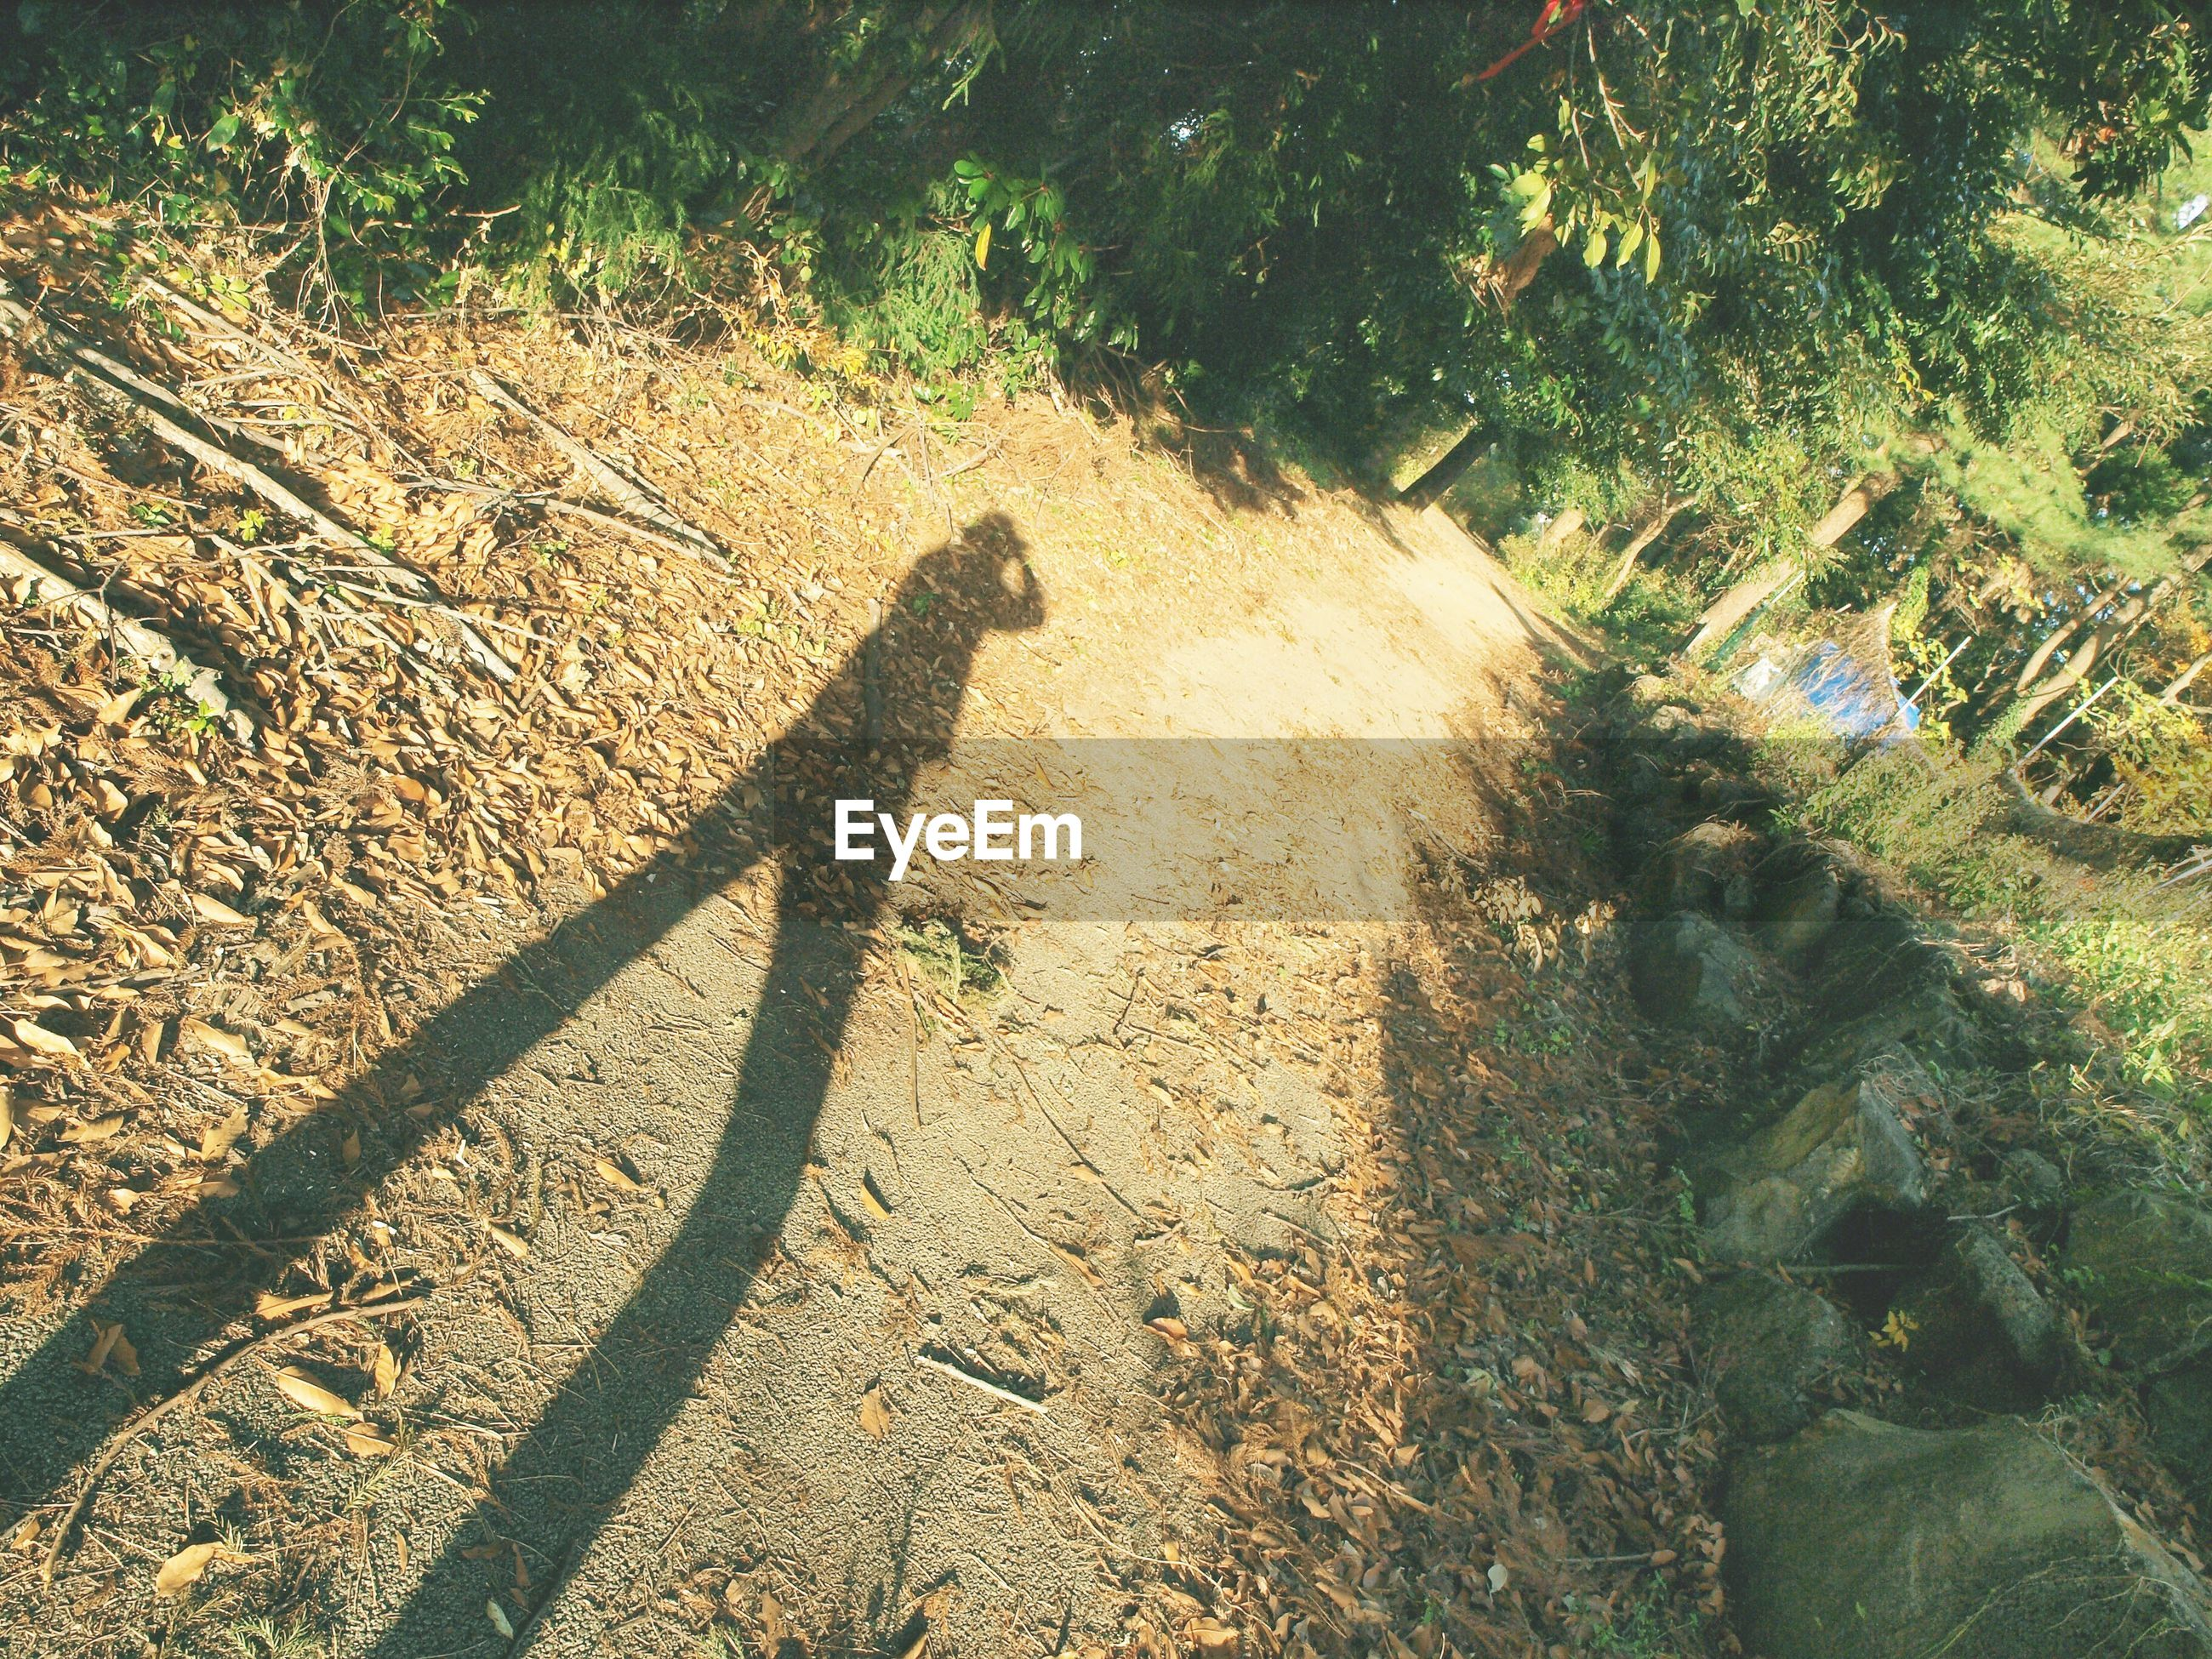 HIGH ANGLE VIEW OF SHADOW OF TREE ON GROUND